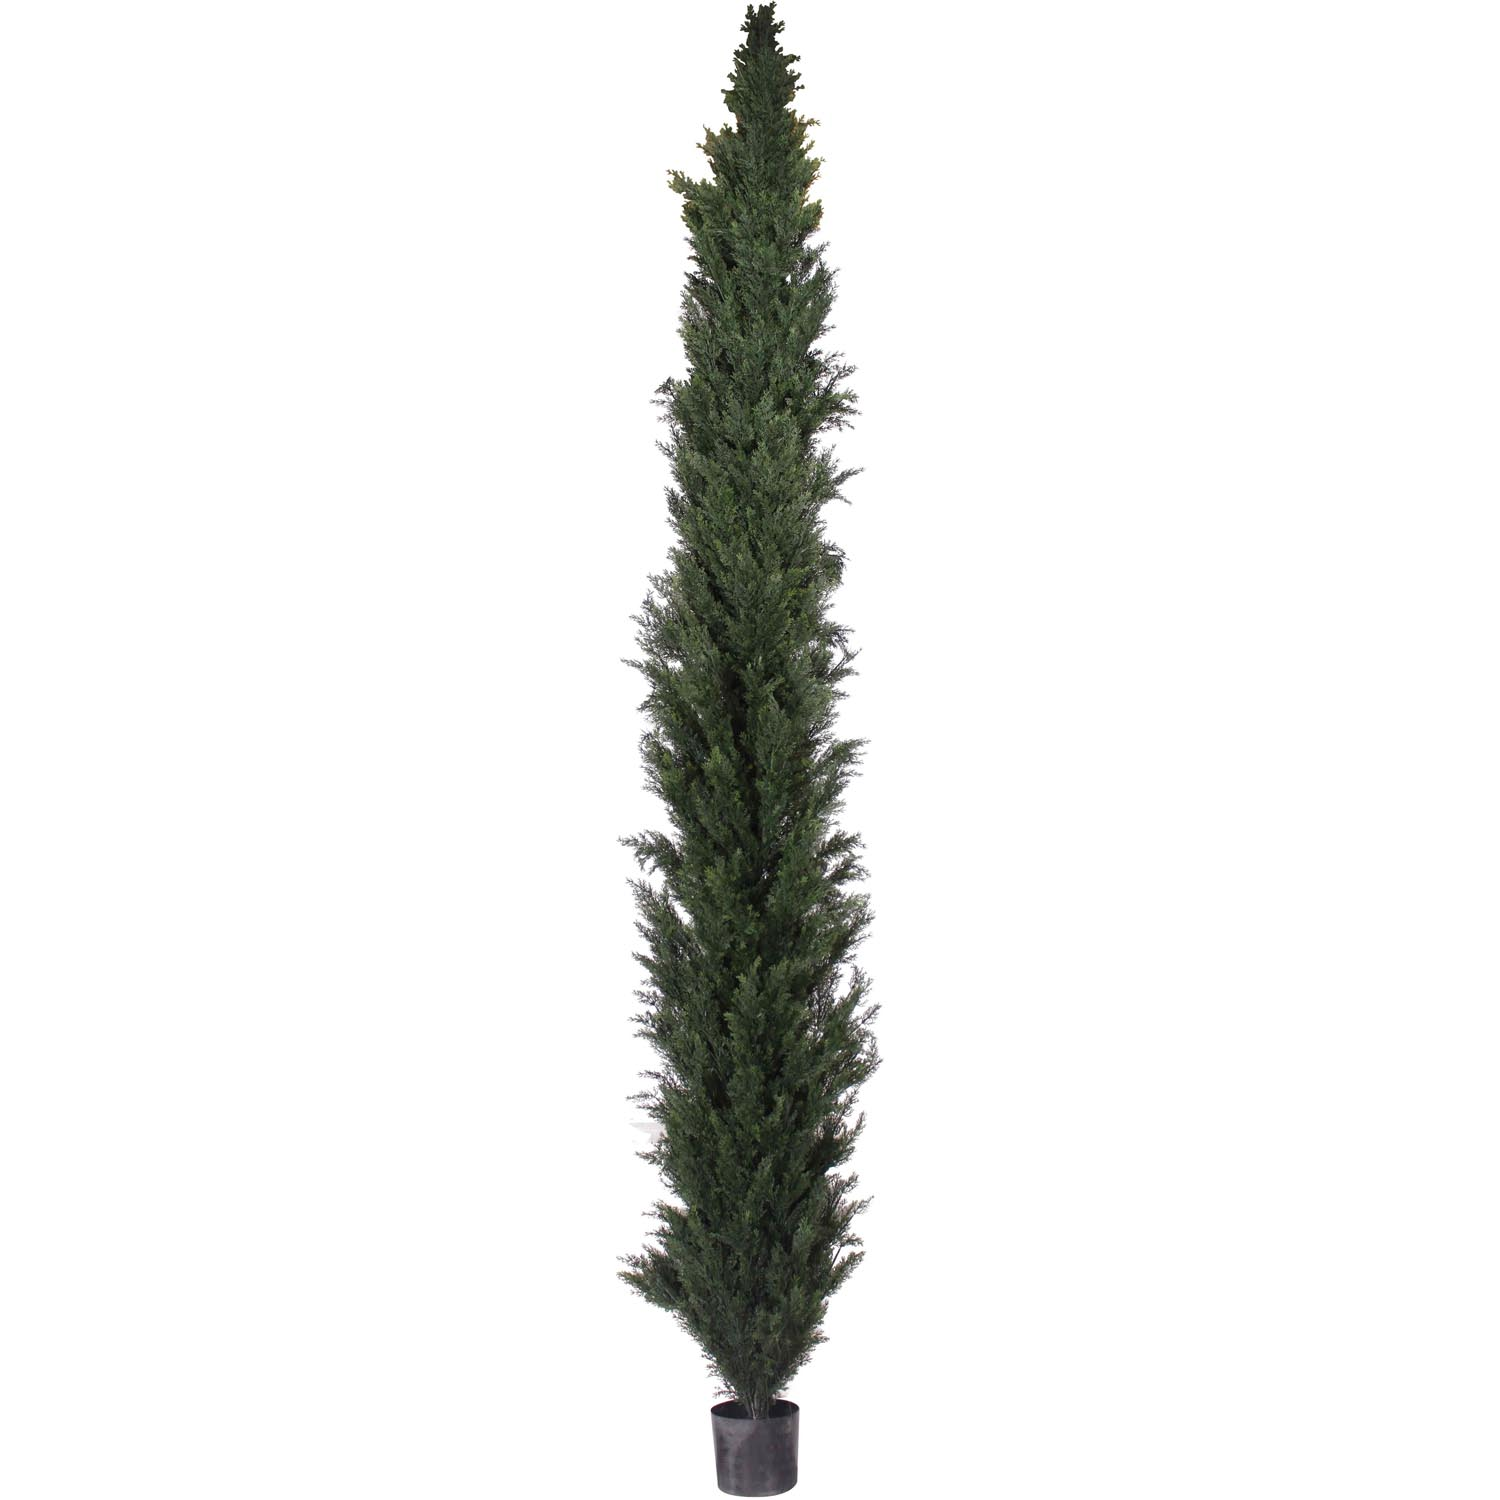 Select Slim-Uv-Protected-Cedar-Pine-Tree-Potted Product Picture 707